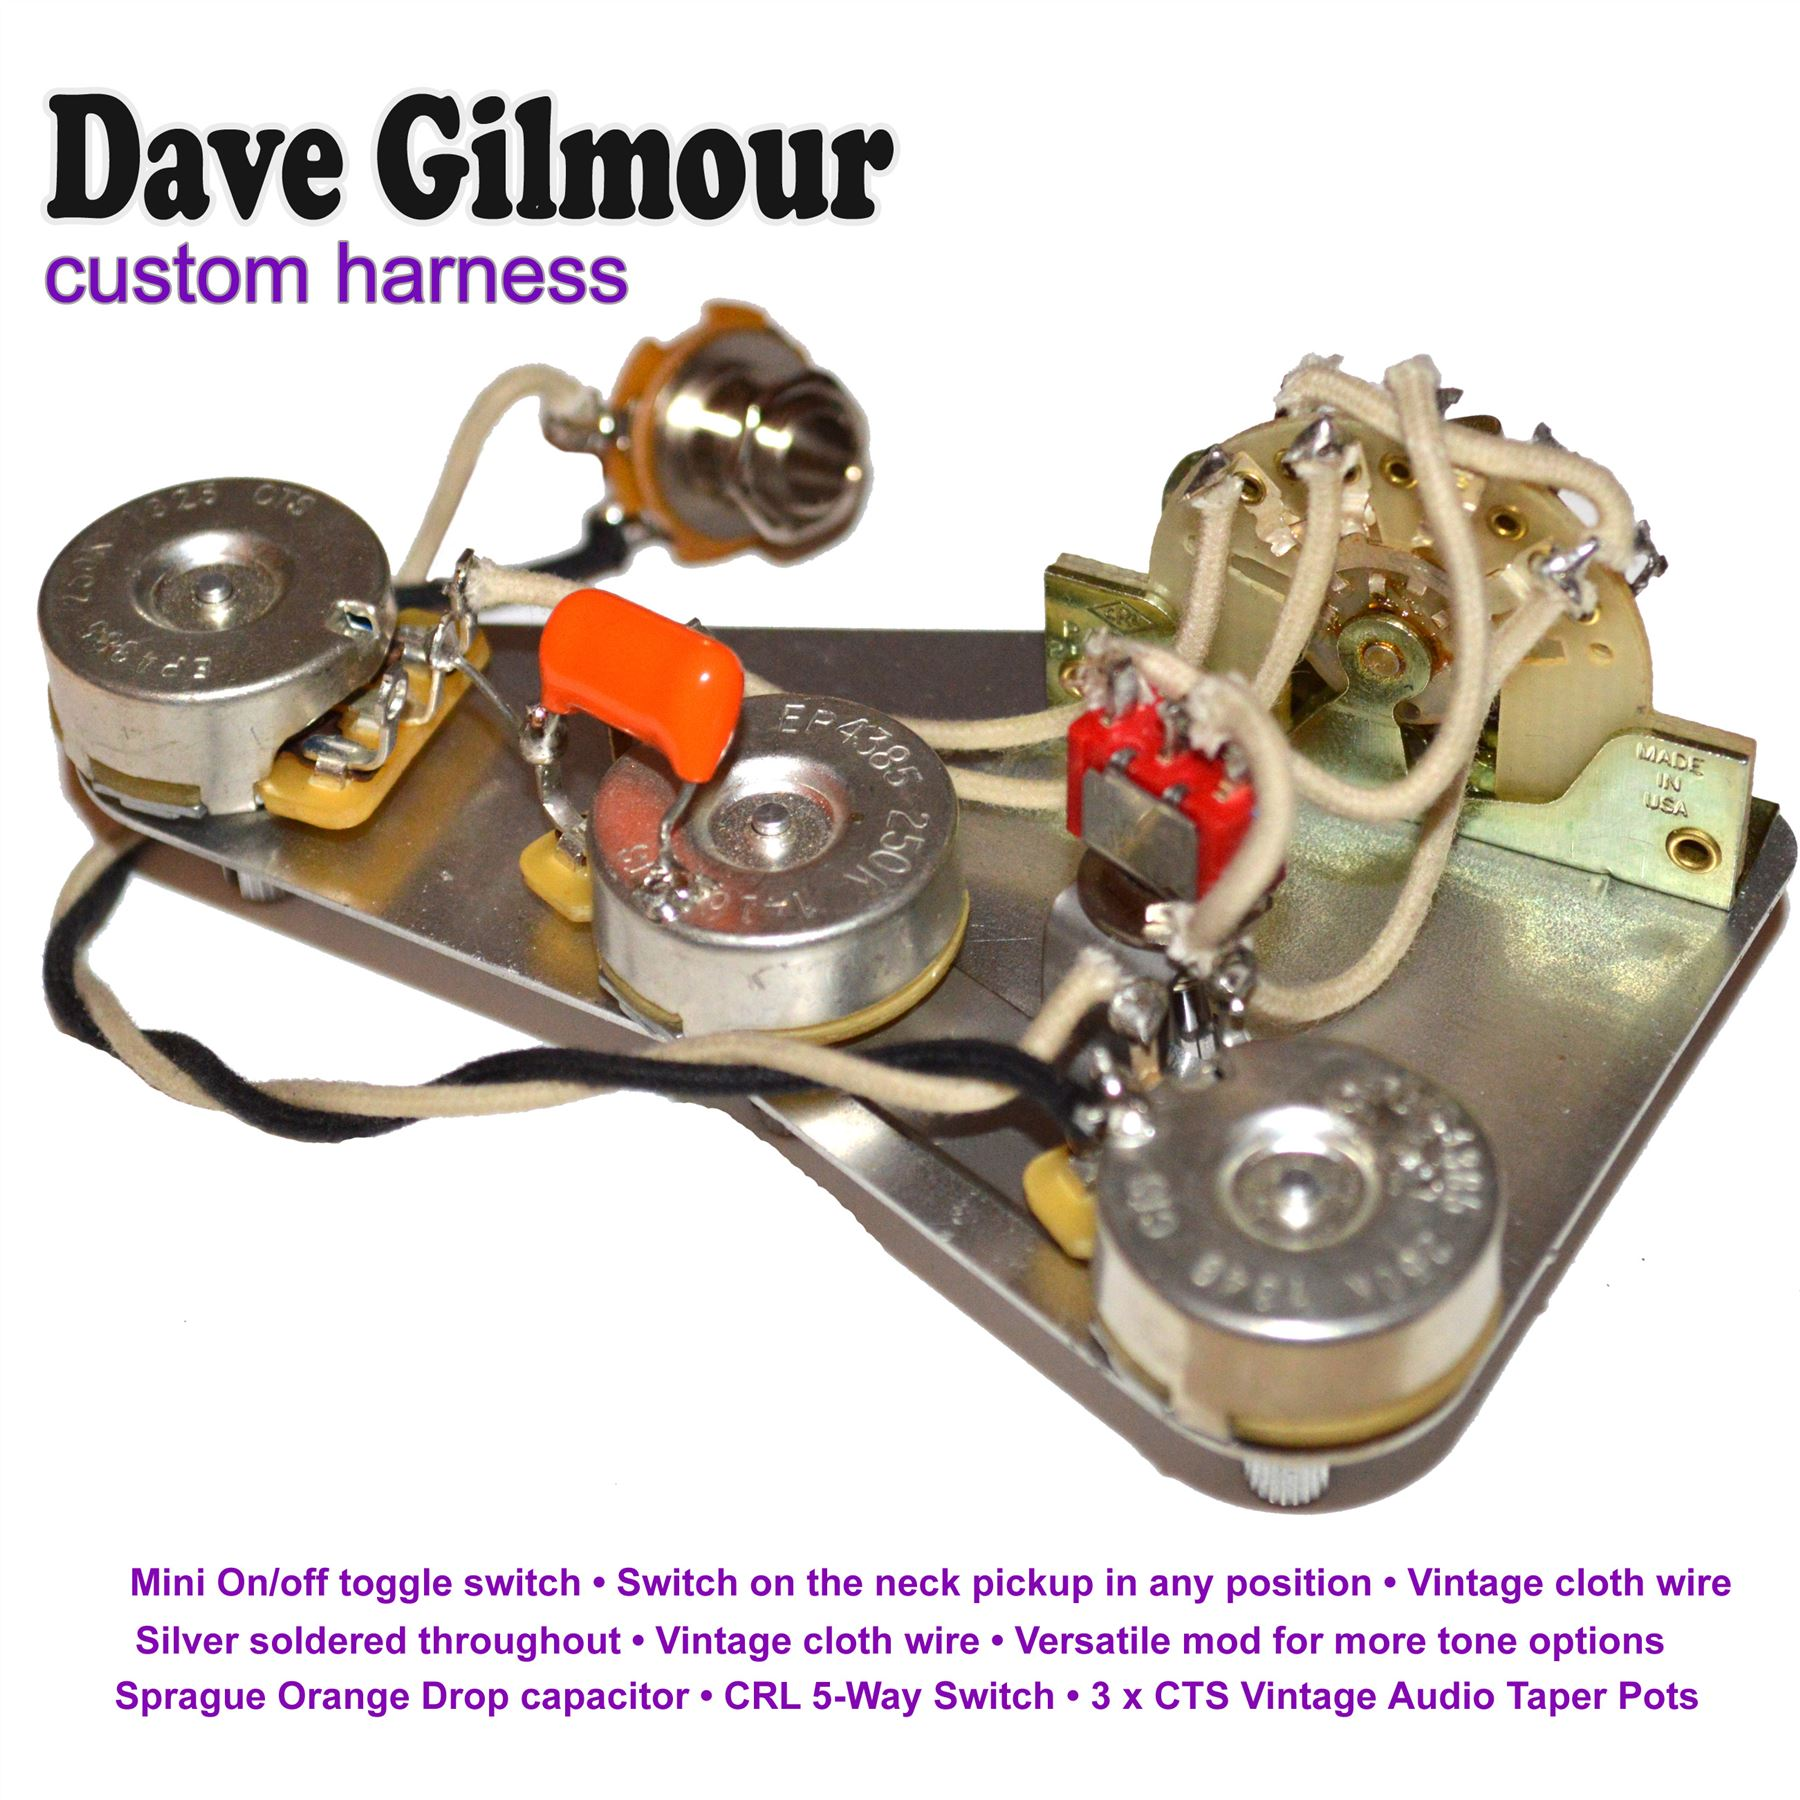 dave gilmour deluxe pre-wired stratocaster wiring kit with recessed mini toggle | ebay david gilmour black strat wiring diagram